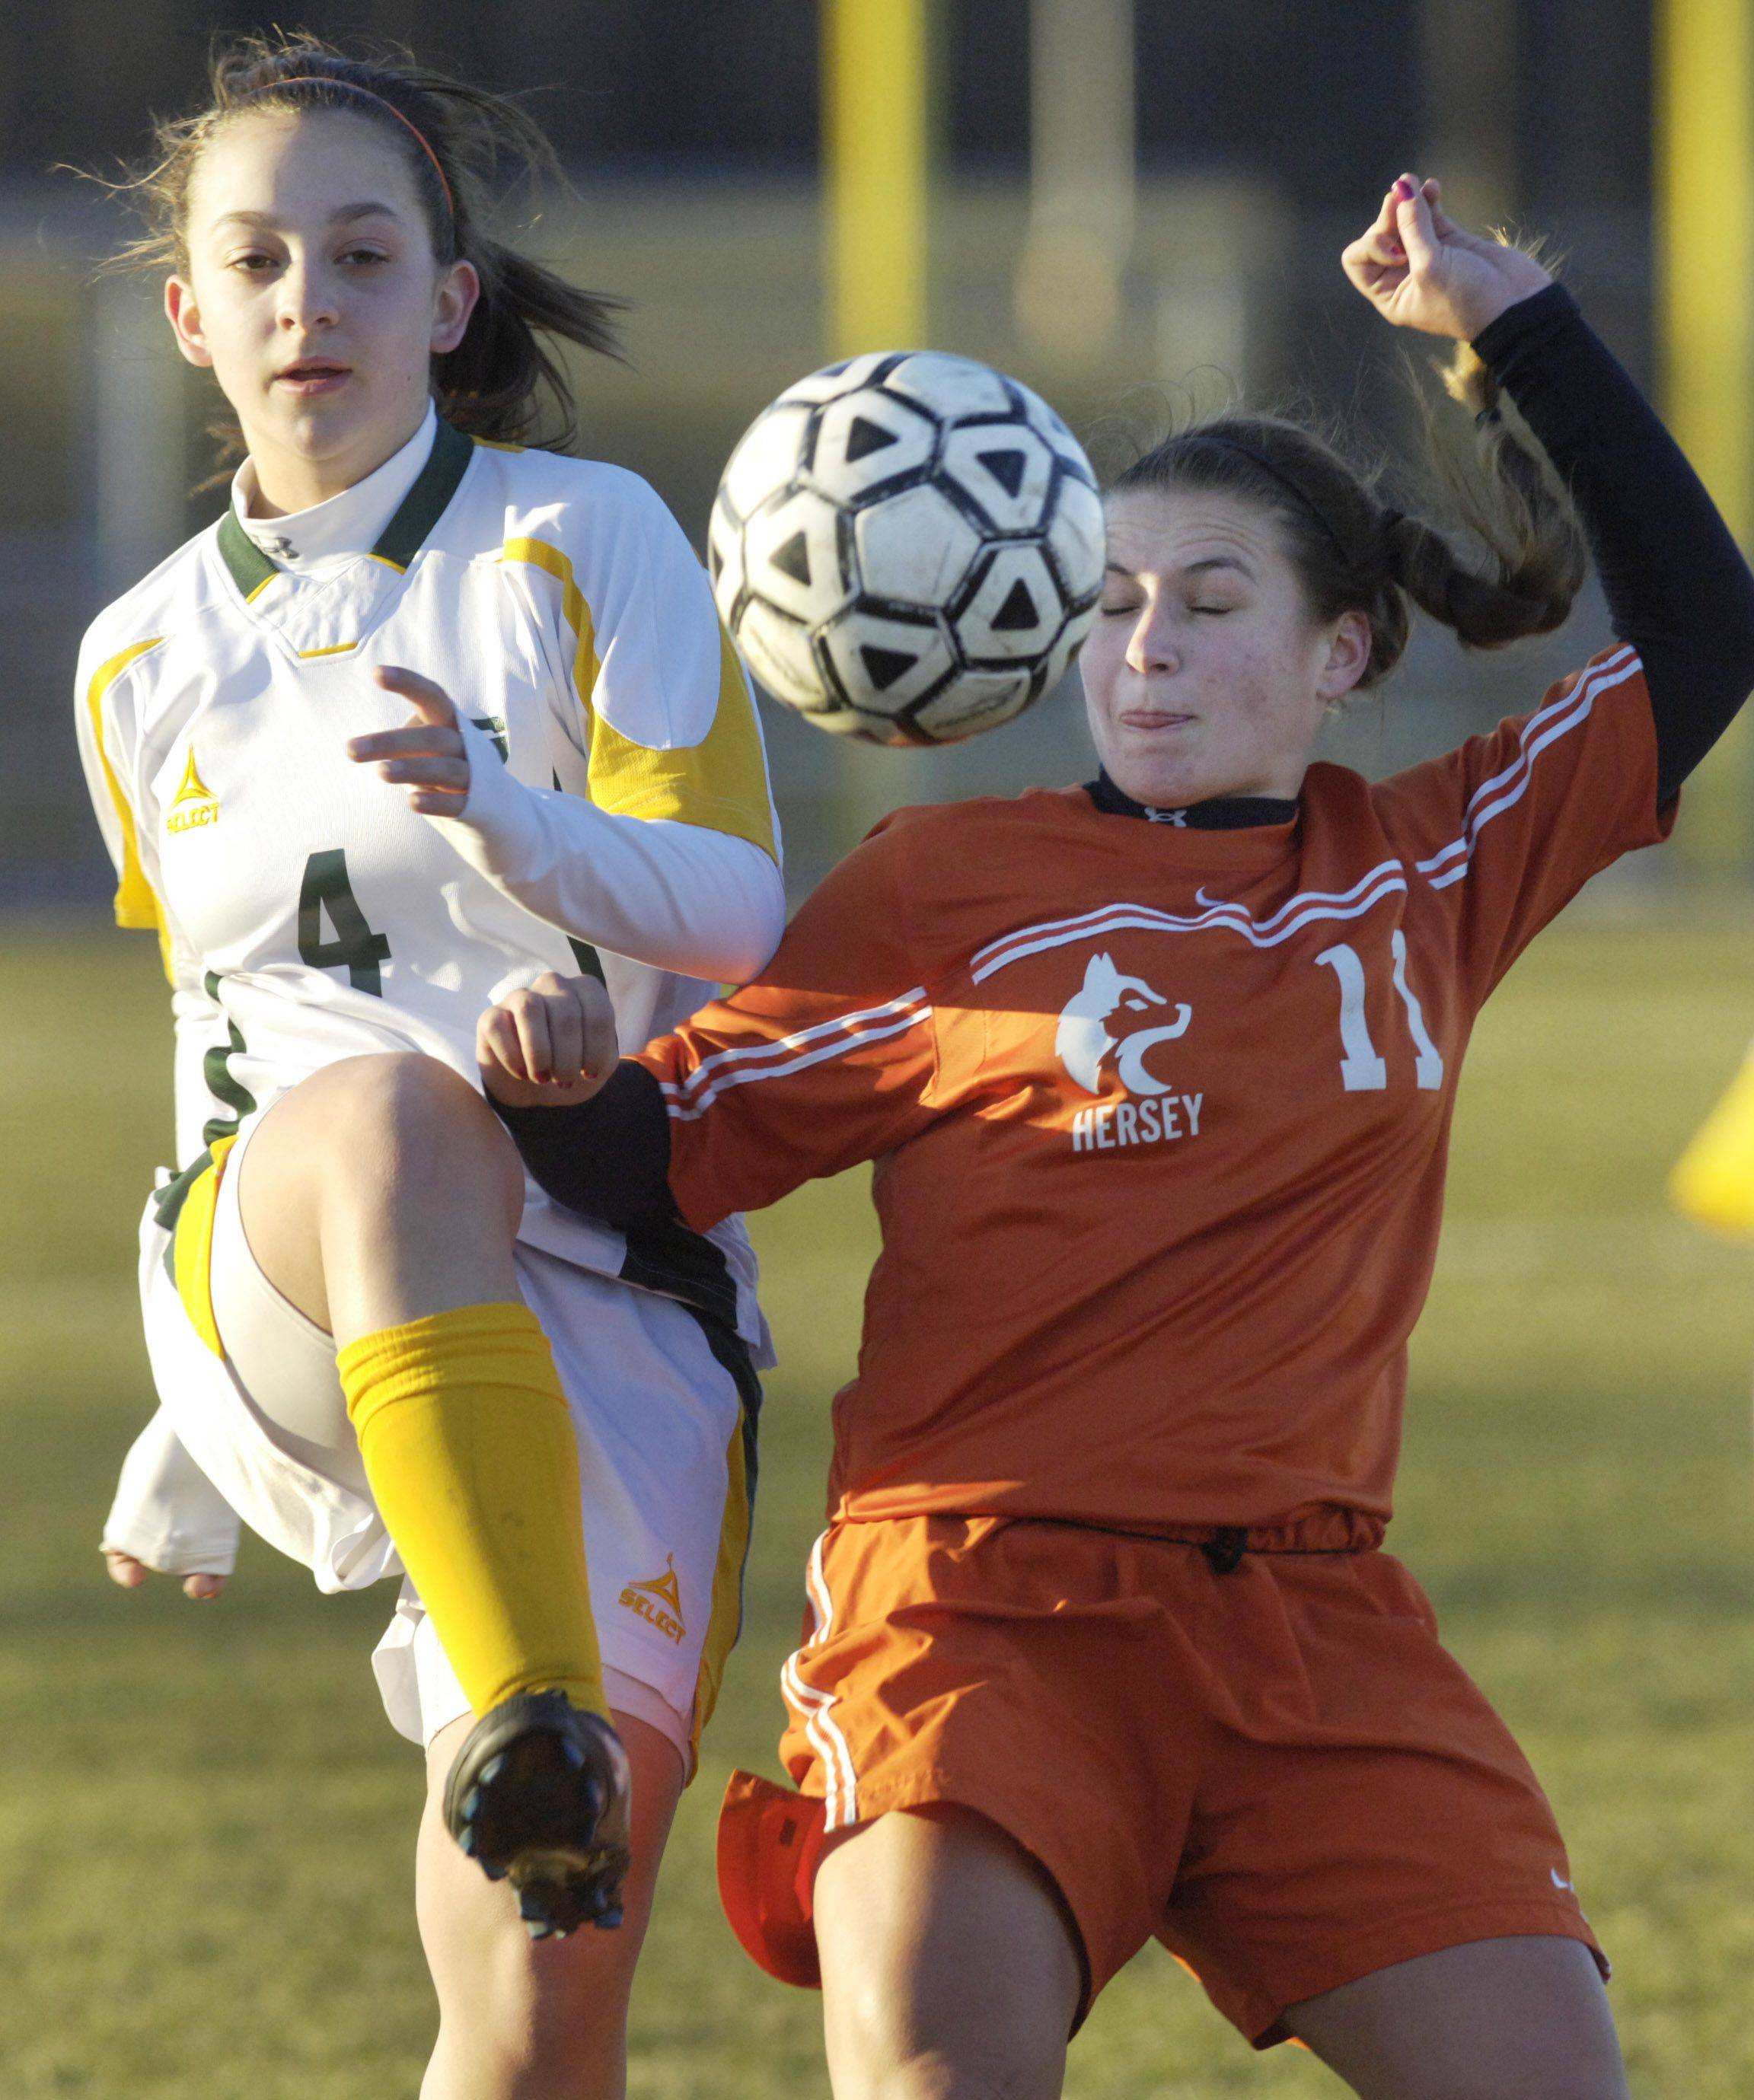 Elk Grove's Sarah Stram, left, kicks the ball past Hersey's Nicole Pietro during Wednesday's game.